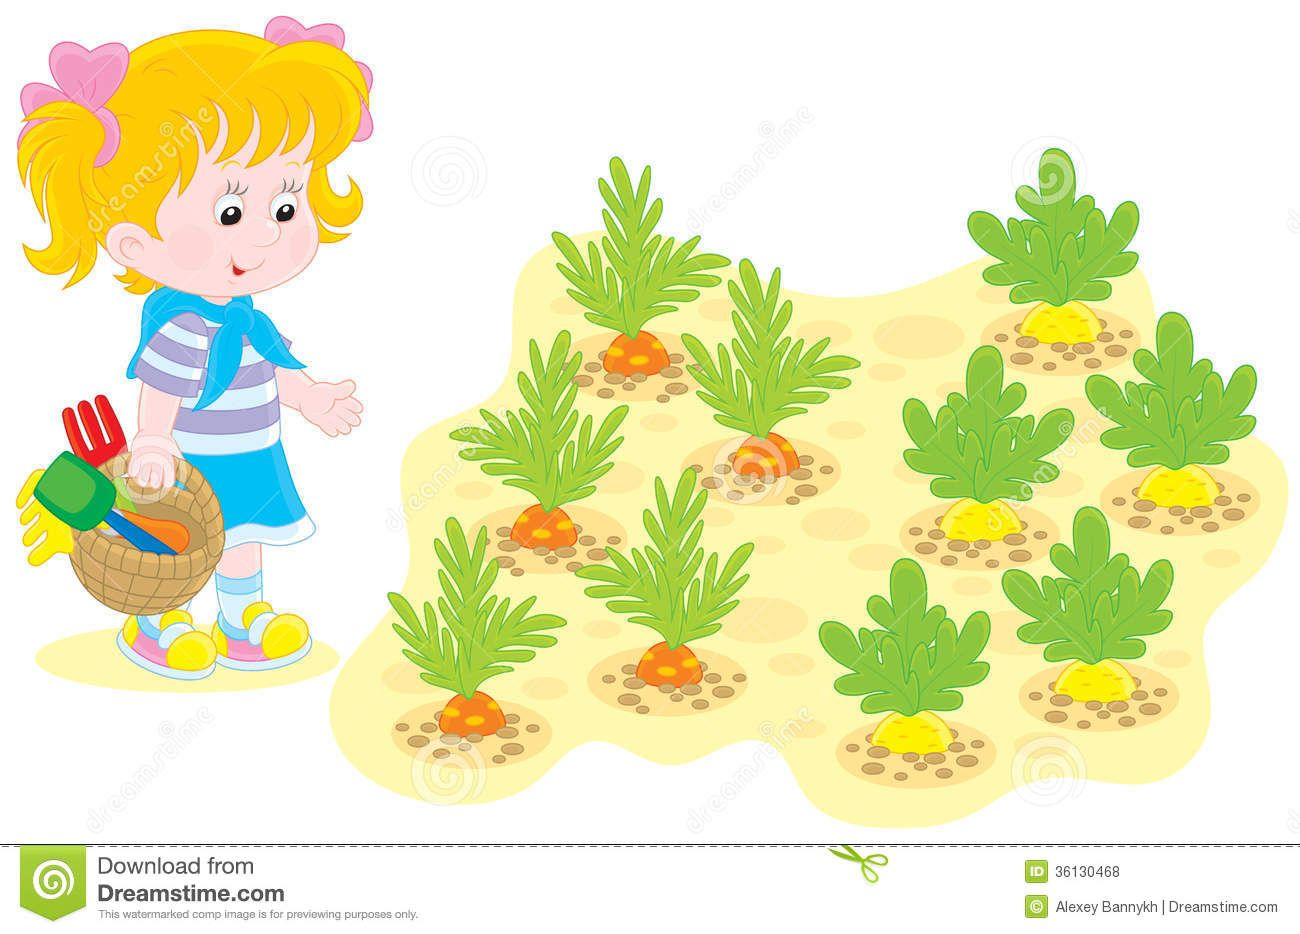 Clipart vegetable garden freeuse stock Vegetable Garden Graphic With Vegetable Garden Clipart Kids Garden ... freeuse stock